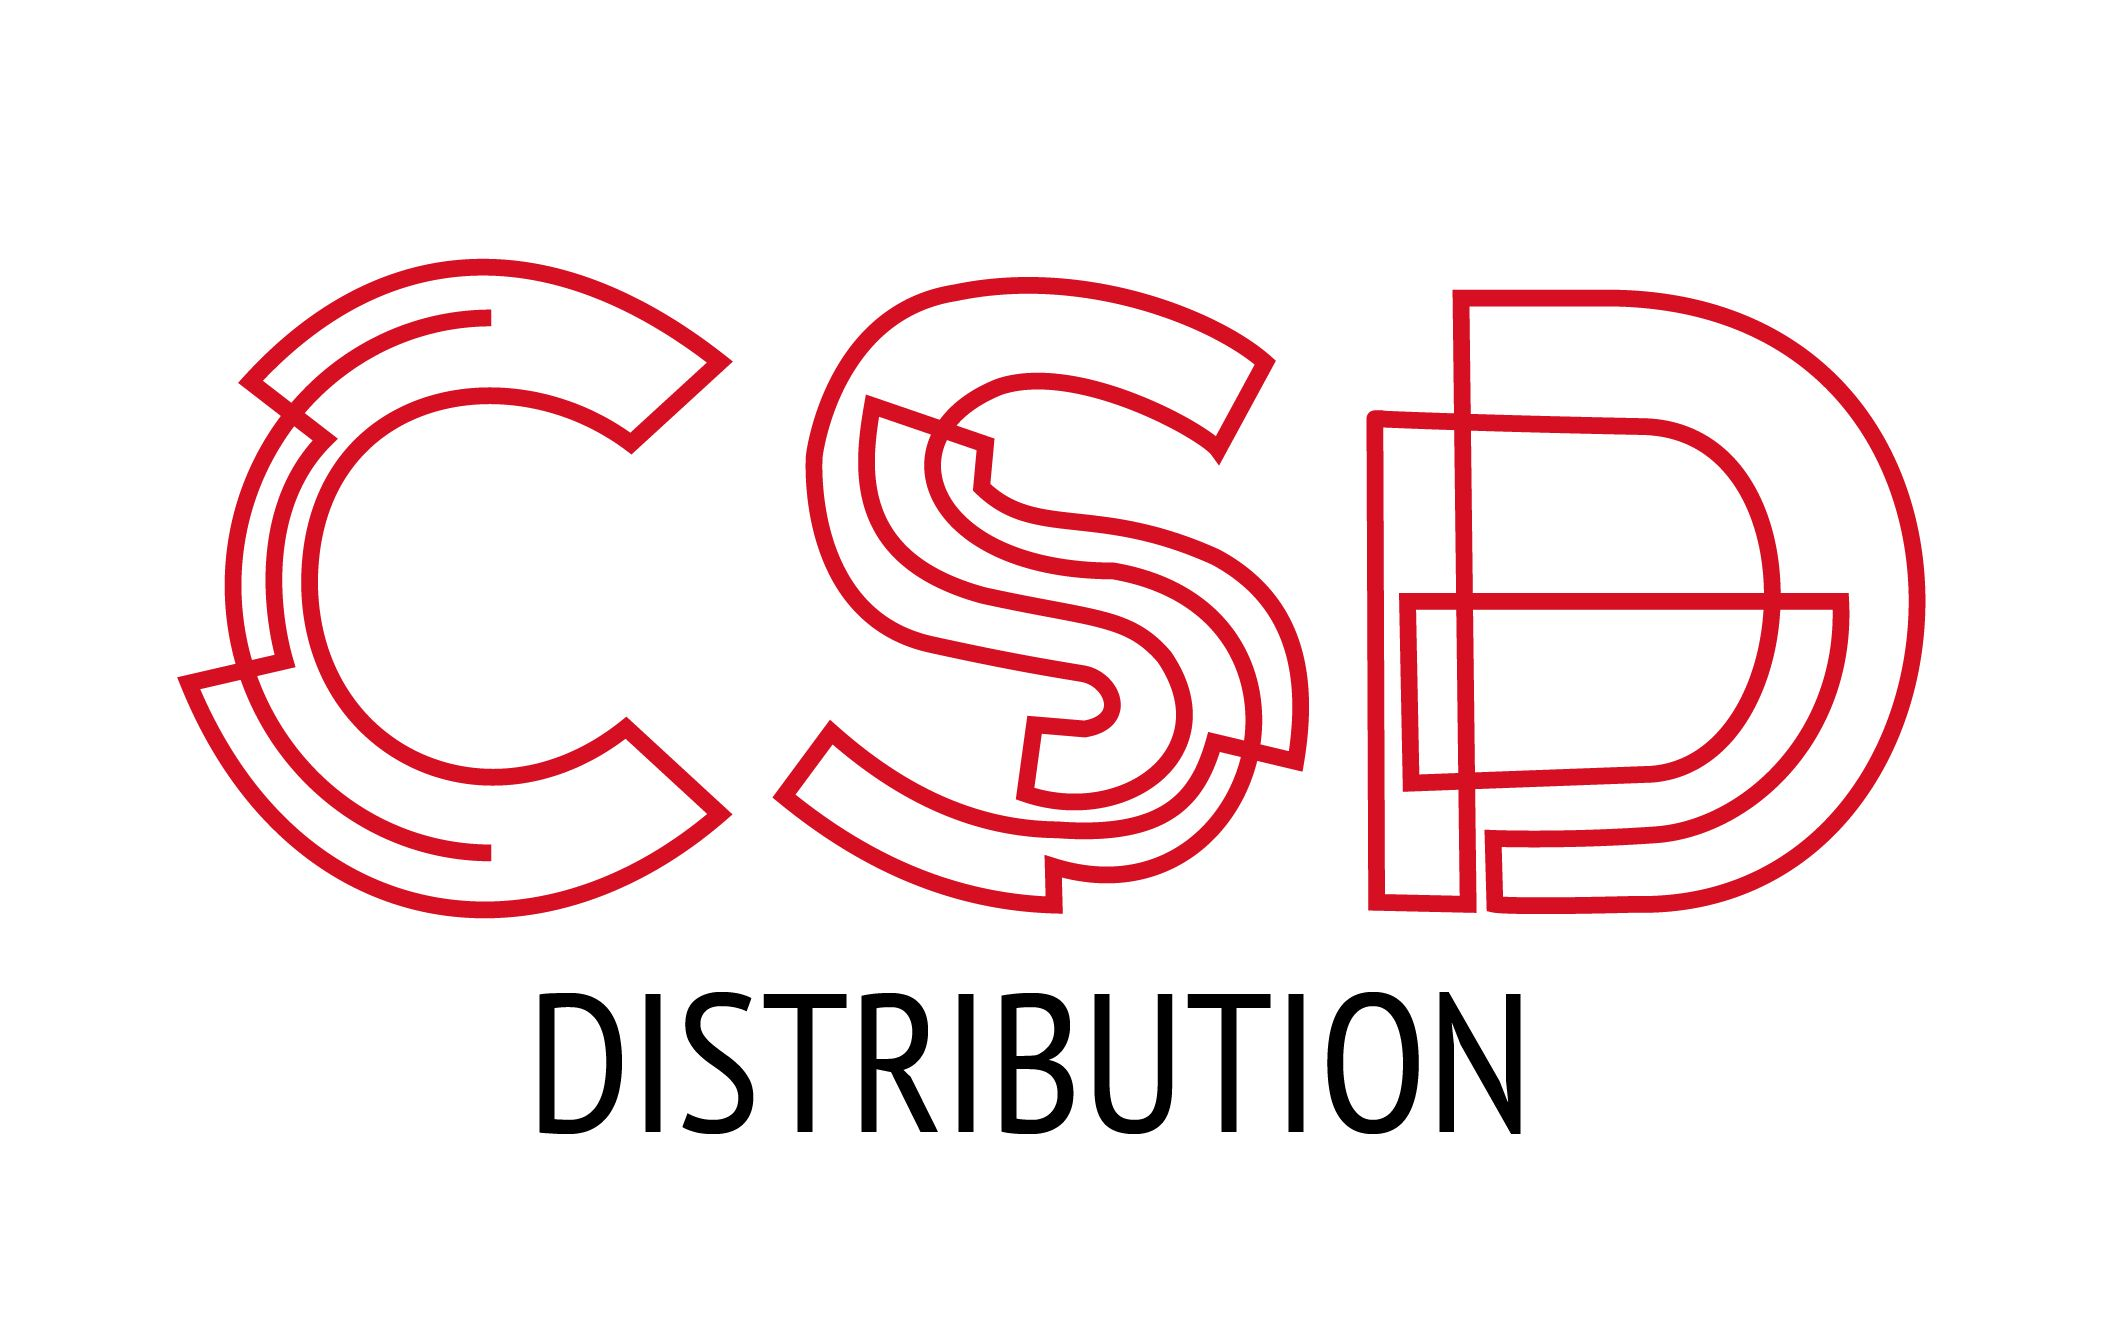 CSD DISTRIBUTION